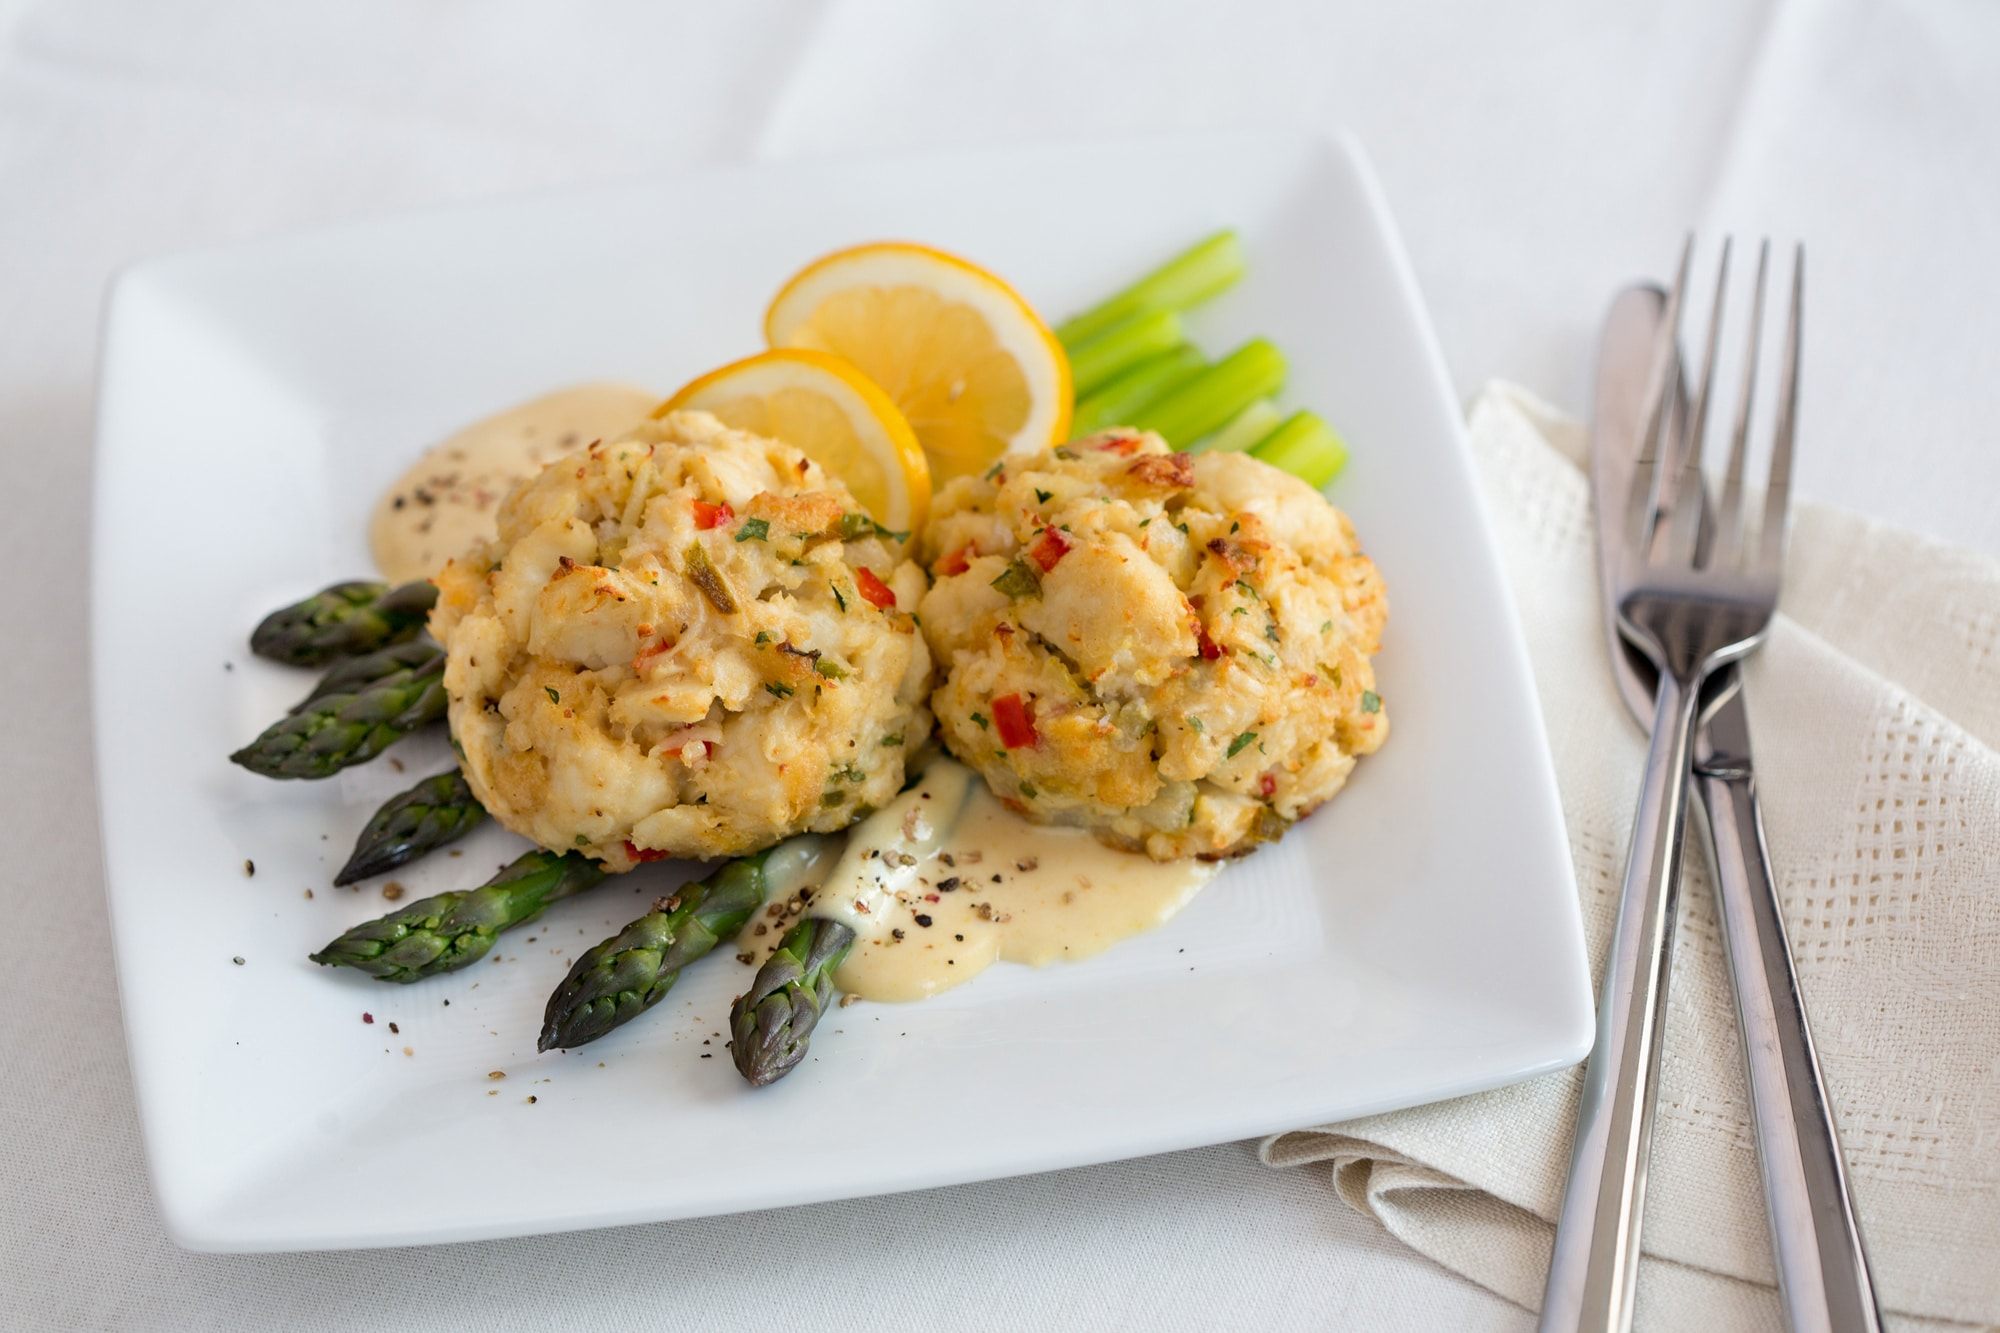 King S Fish House Crab Cakes